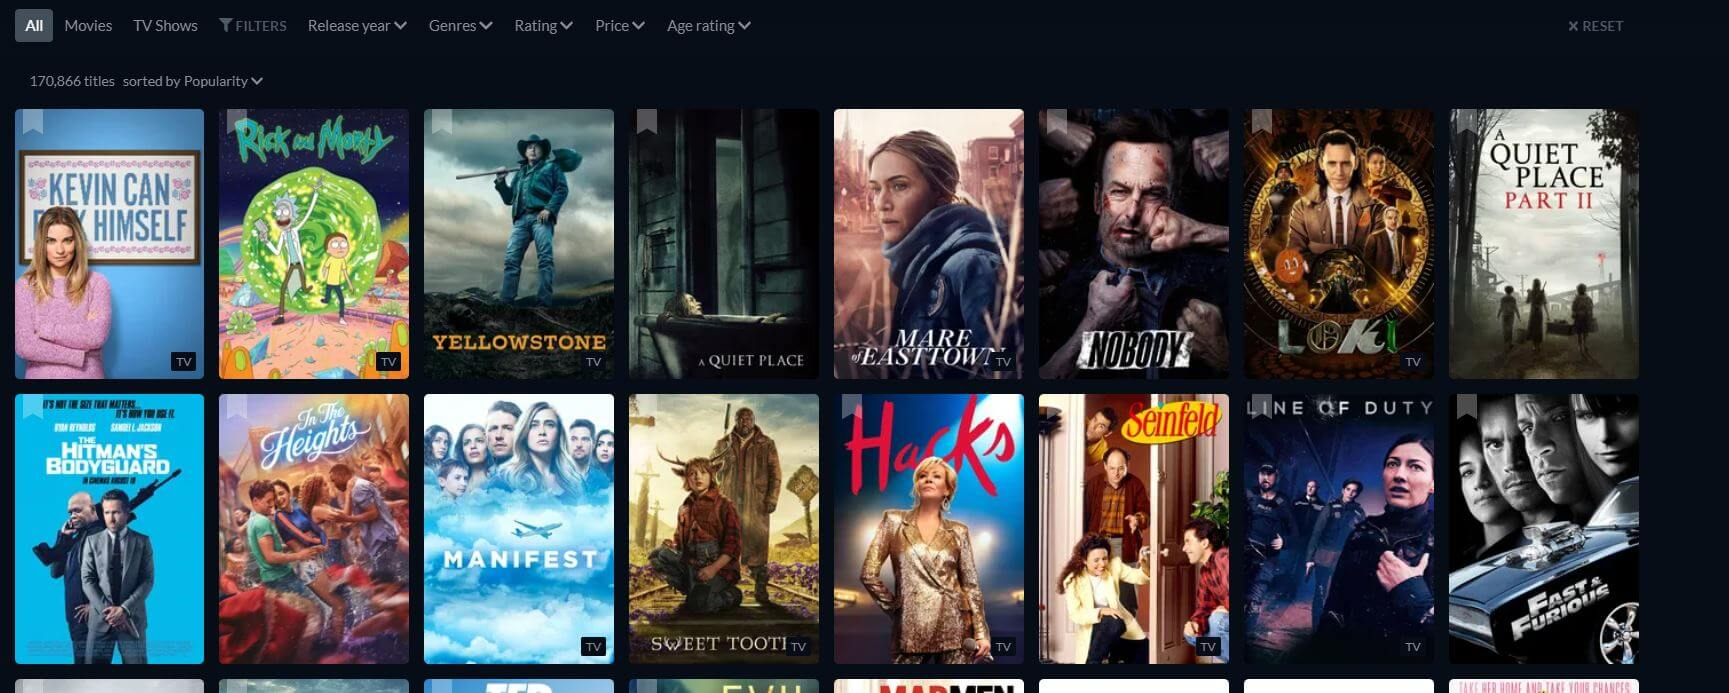 Just-watch sites like 123movies